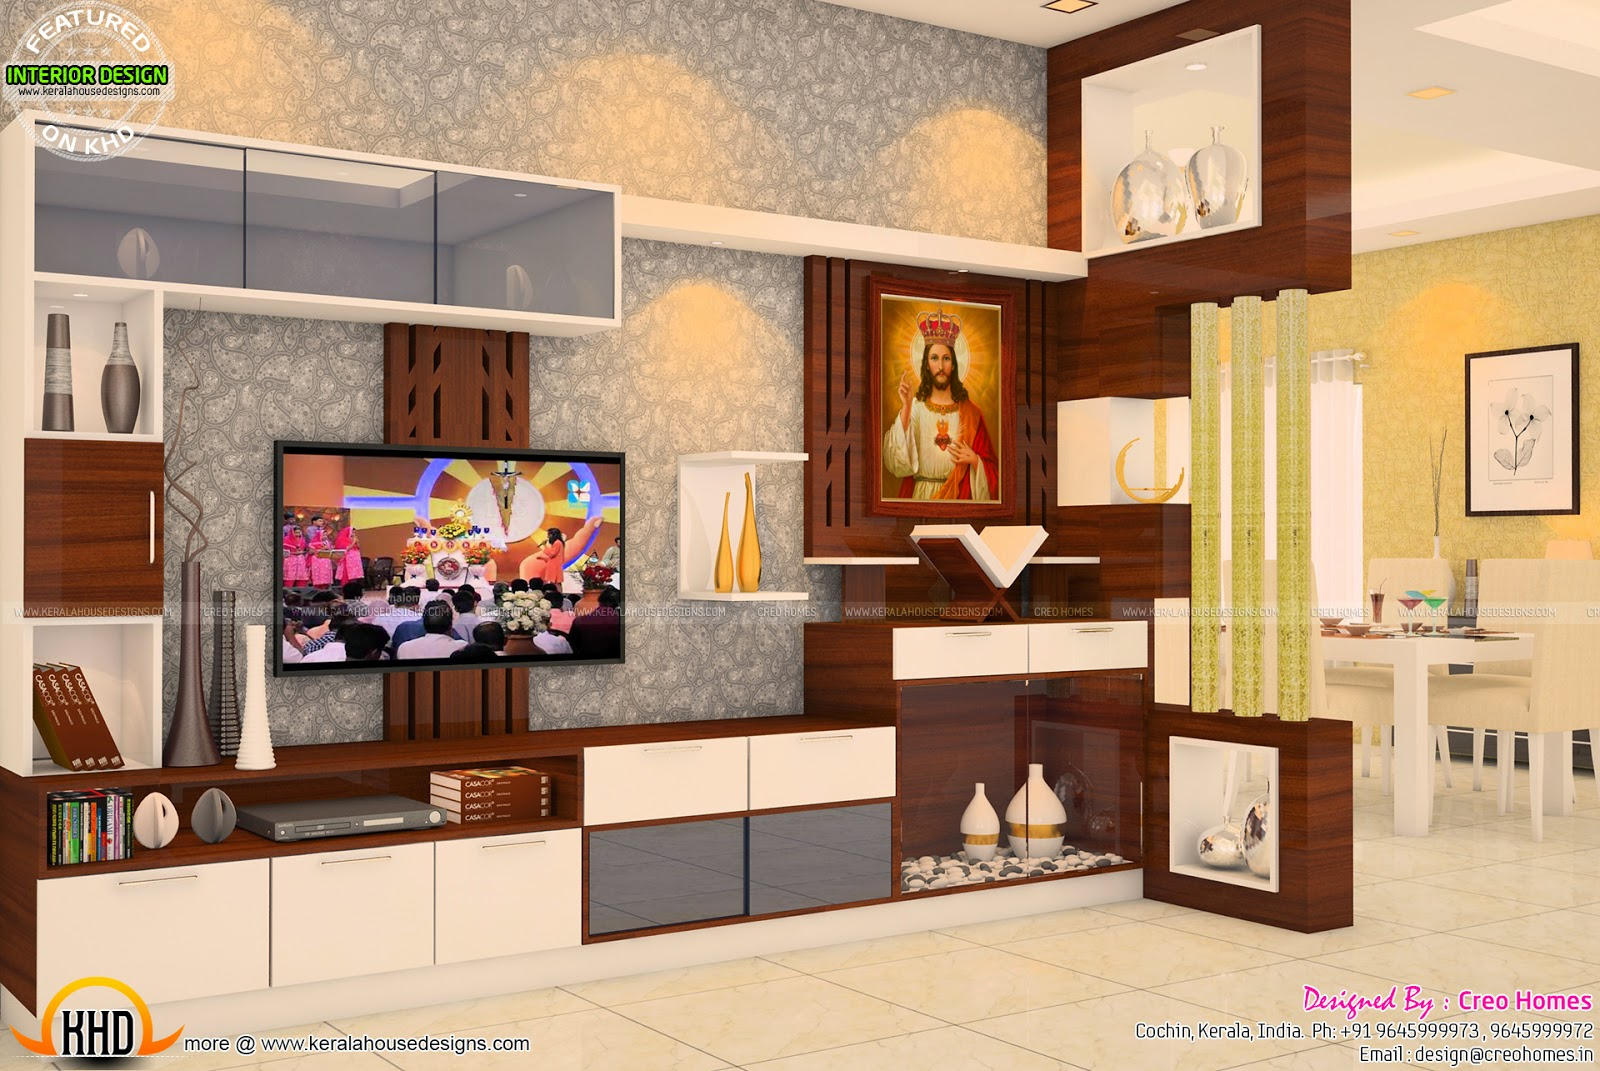 Living prayer kitchen interiors kerala home design and Interiors for homes